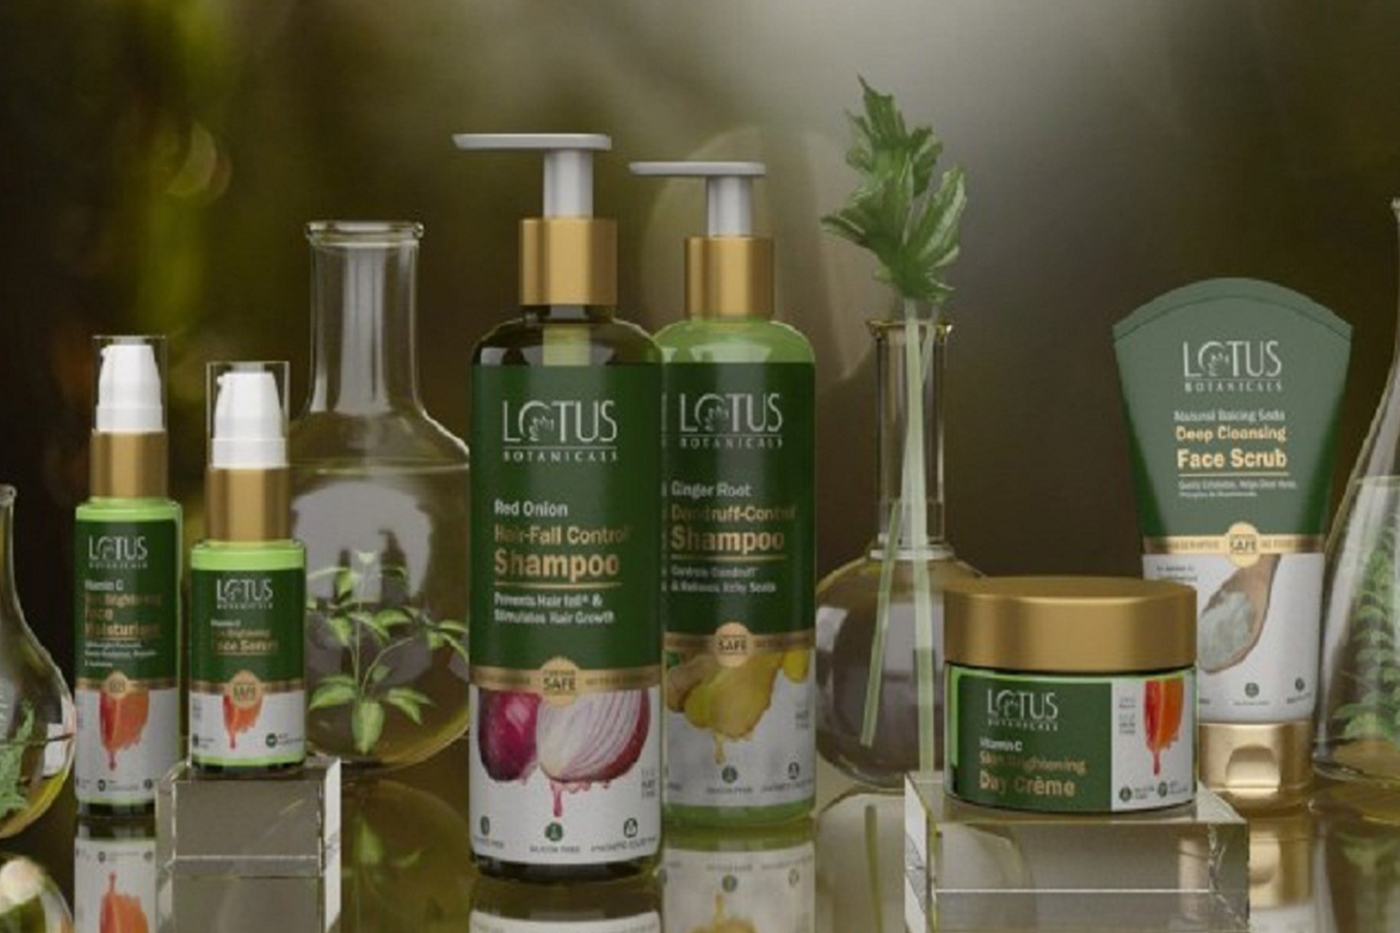 Lotus Herbals' clean beauty brand aims to cross $ 10 mln in 2021